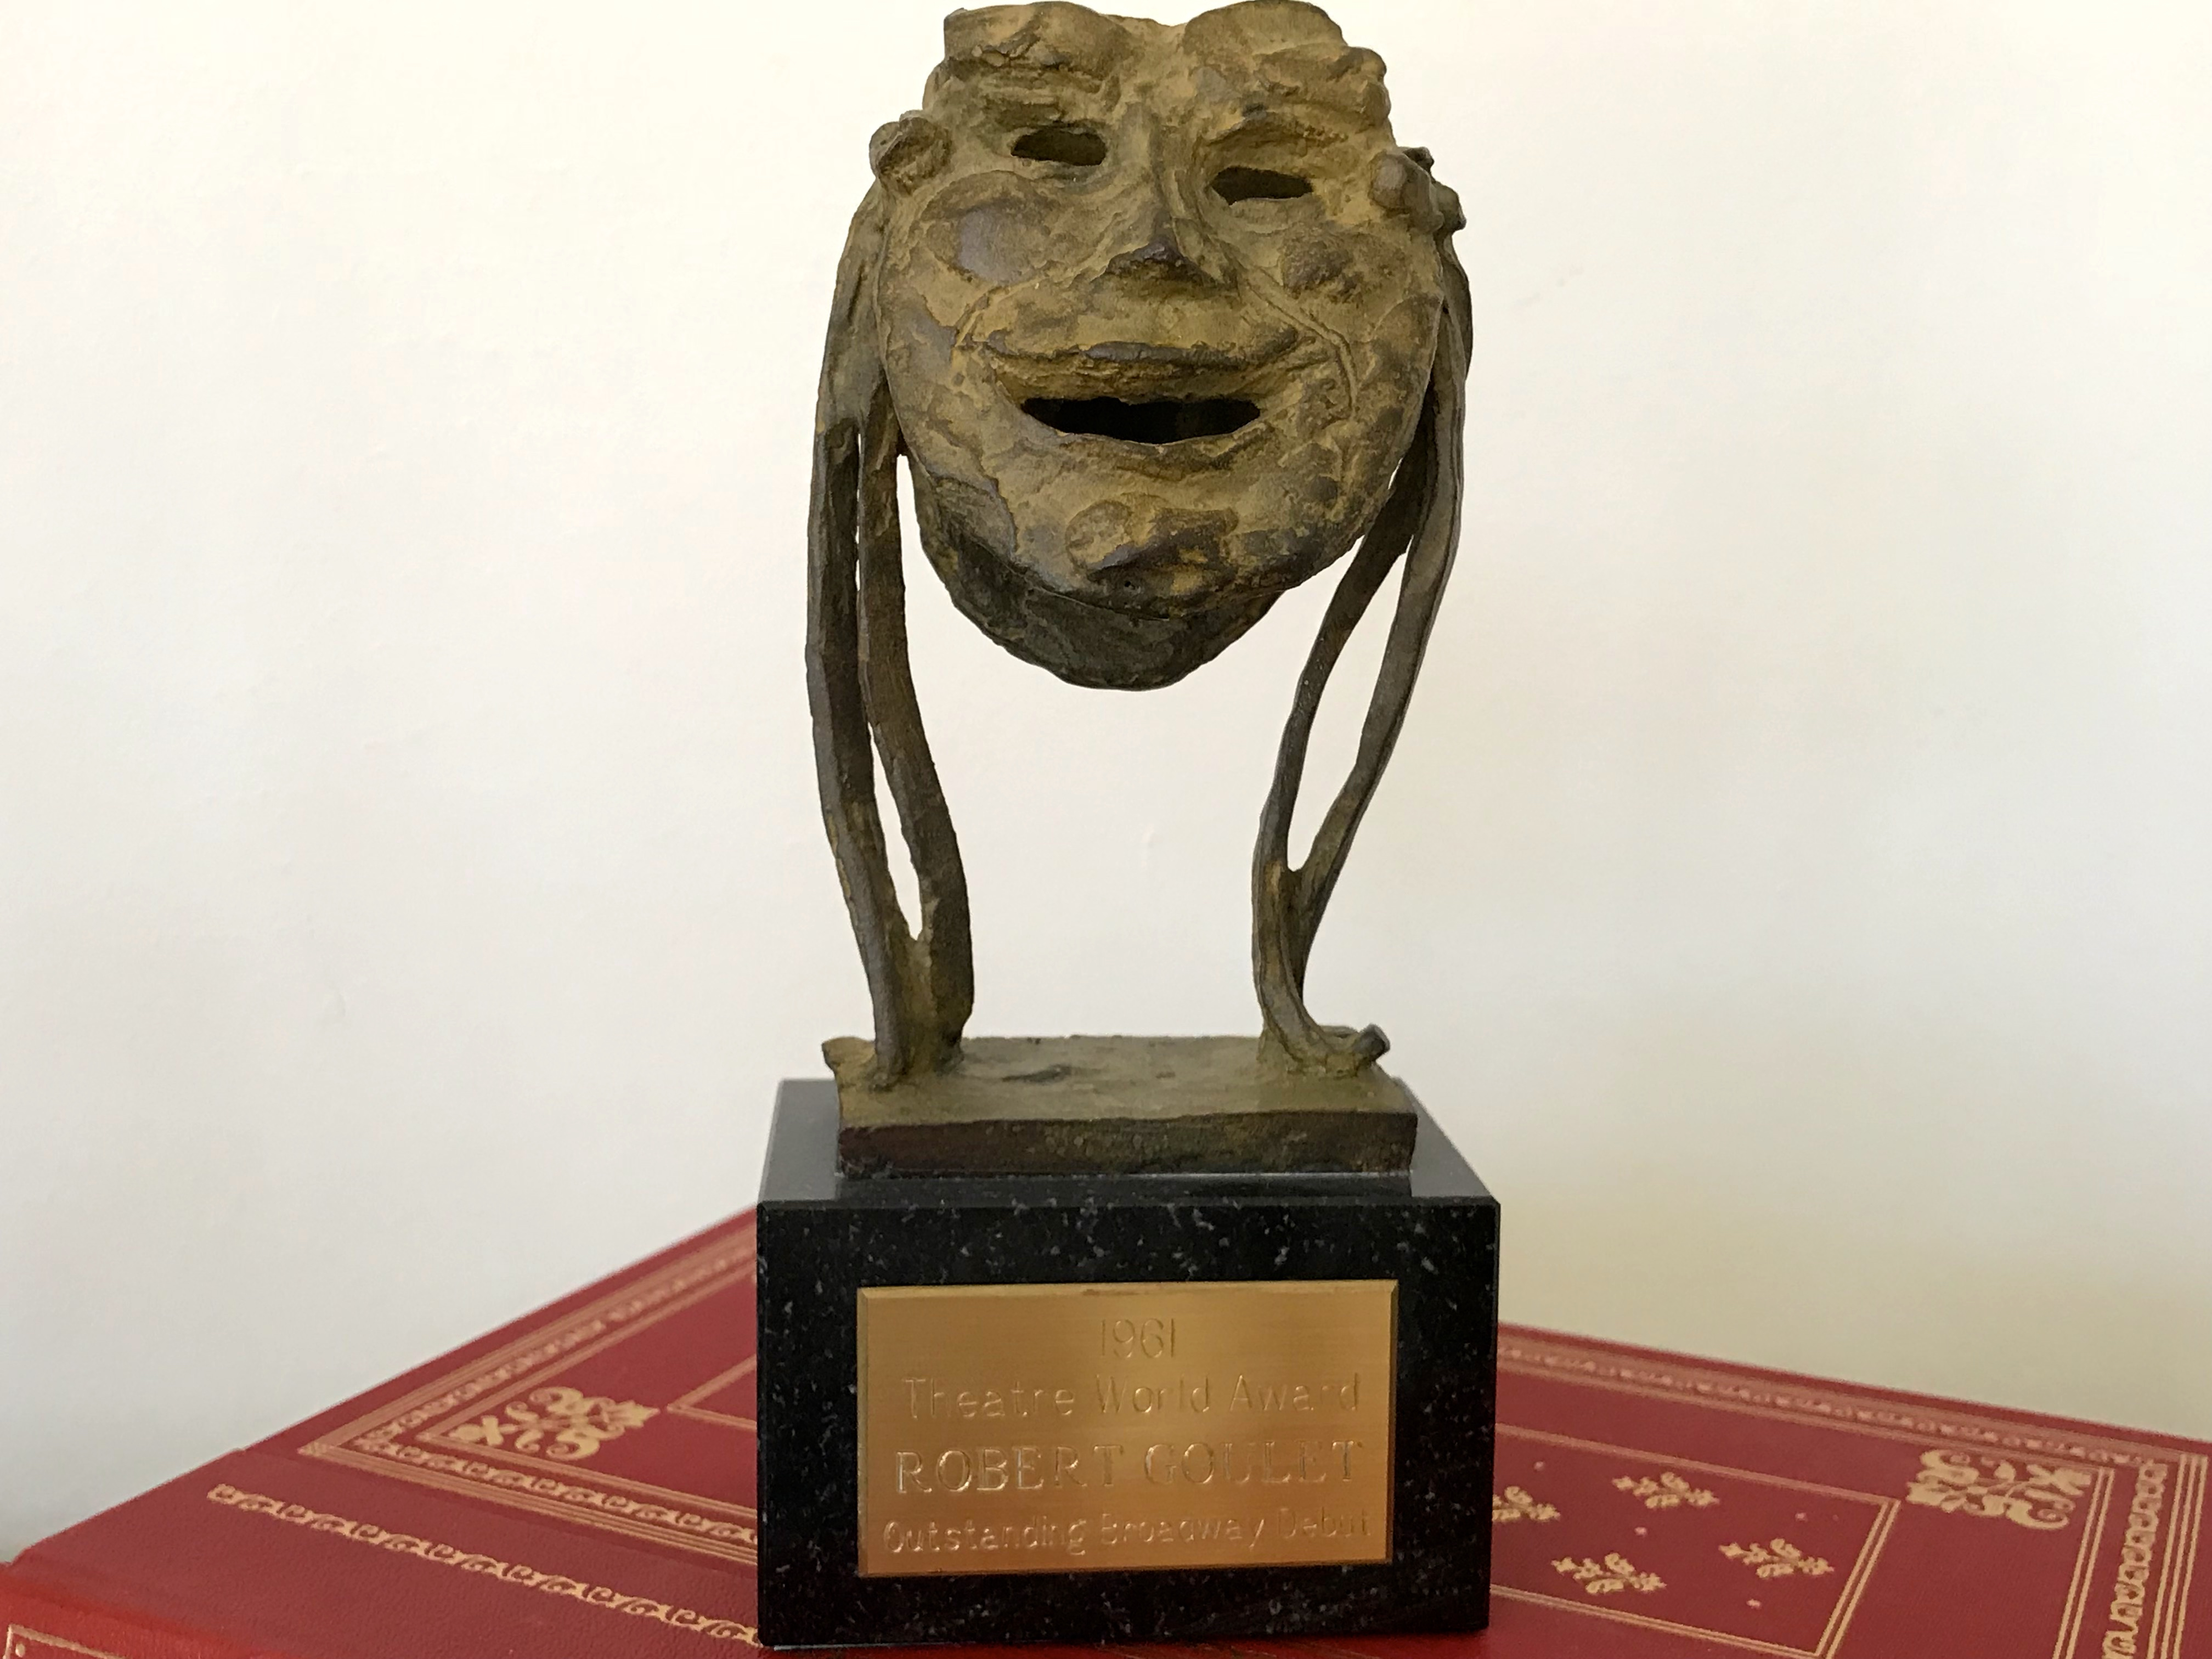 Theater World Award (1960)